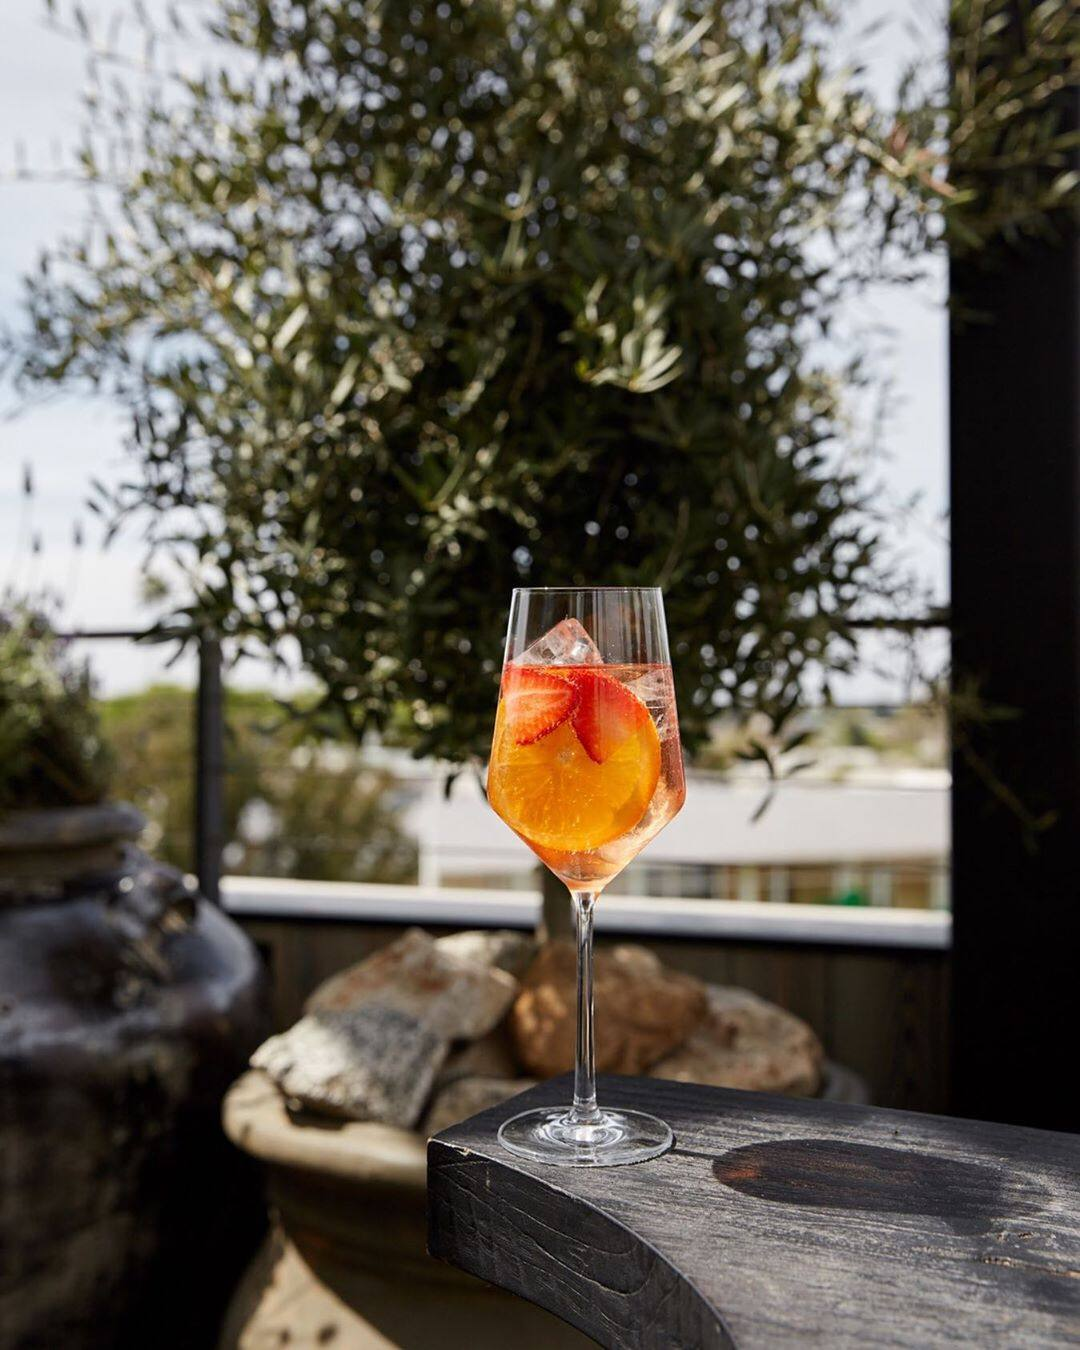 Strawberry Spritz at Margot | Photo: @margotlosangeles, Instagram